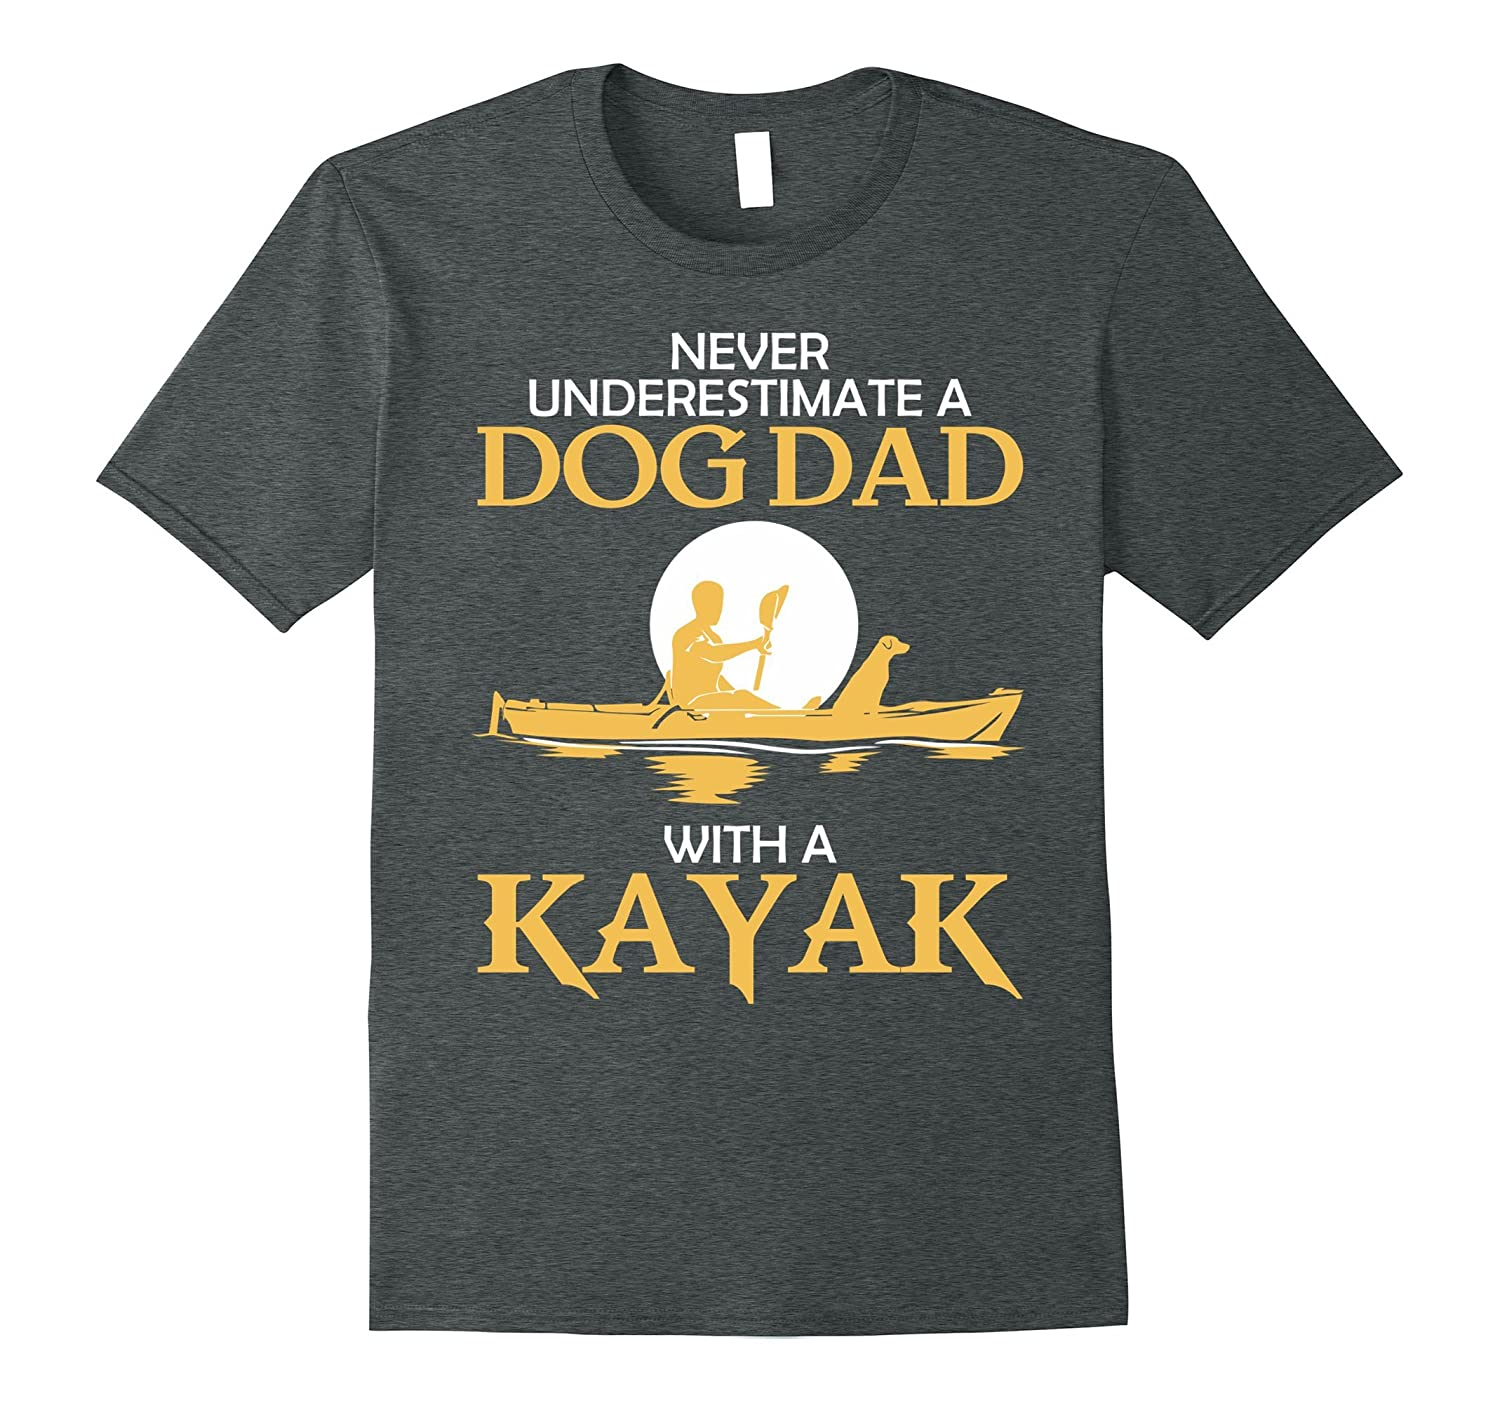 Mens Never Underestimate Kayak Dog Dad T-shirt